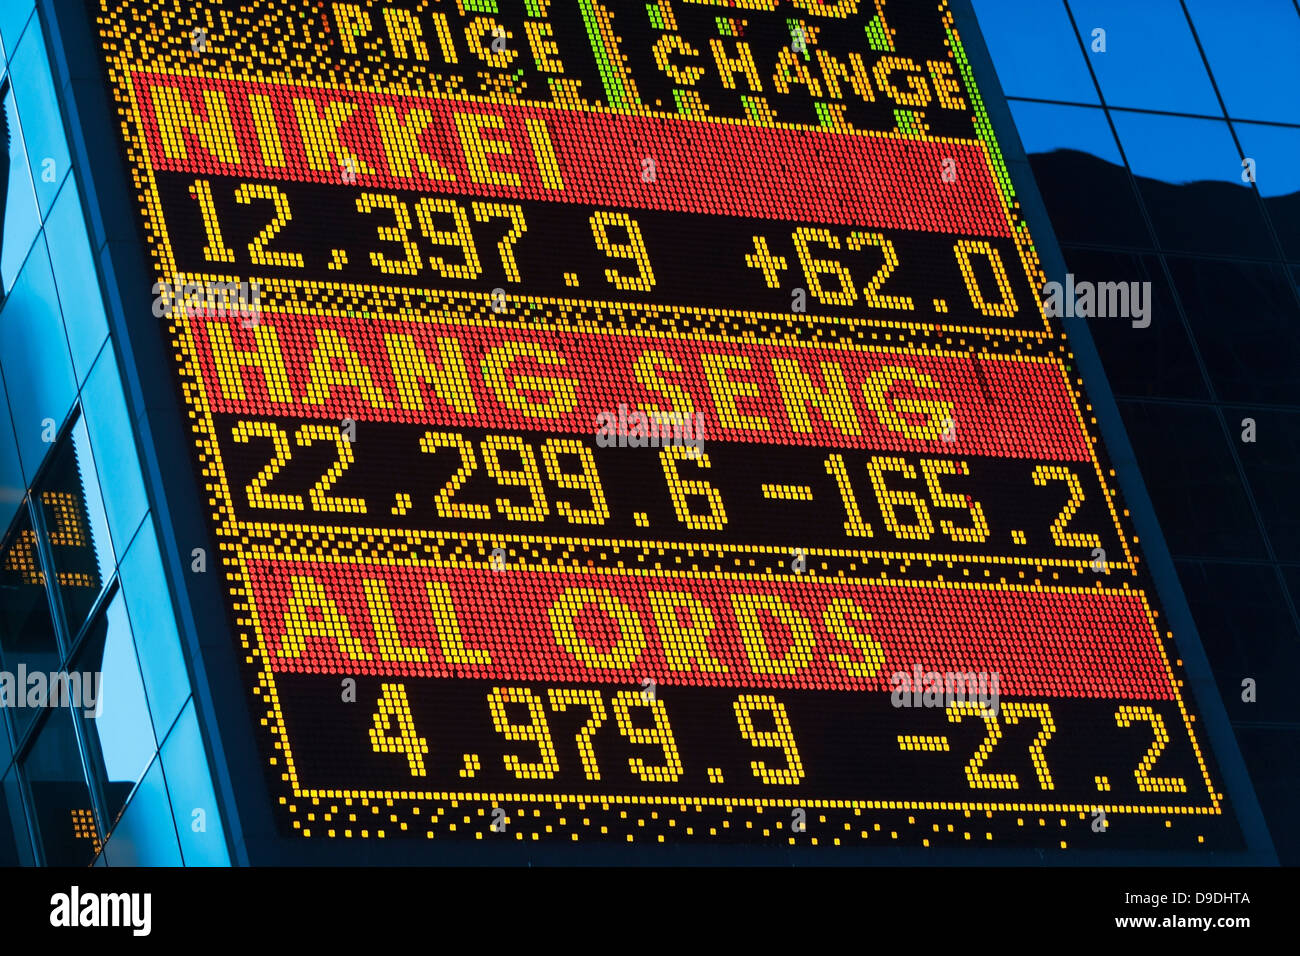 Foreign exchange rates Asia, digital display - Stock Image